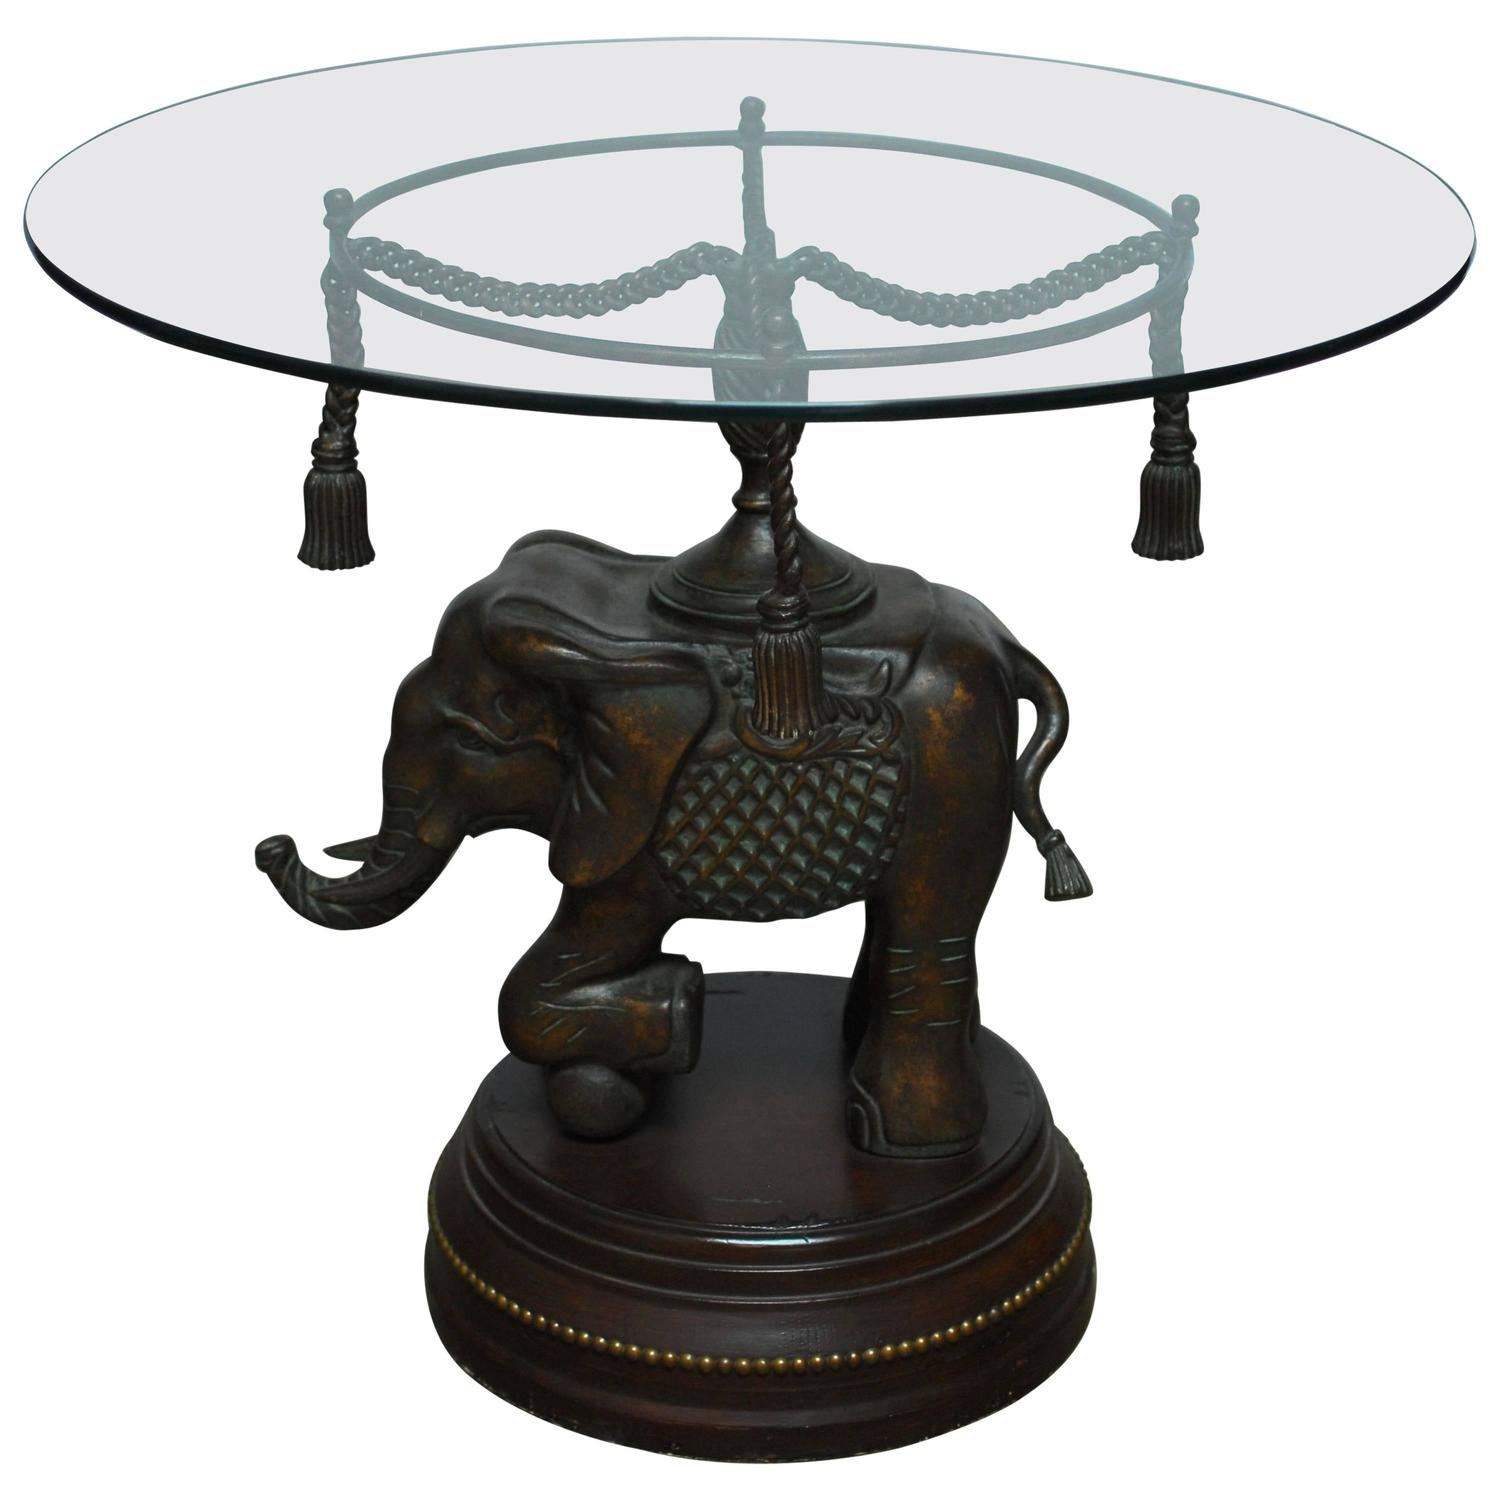 bronze elephant pedestal side table for narrow accent base hand painted wood retro lamp cast aluminium garden furniture wine rack kenroy home barn dining lawn chair with umbrella